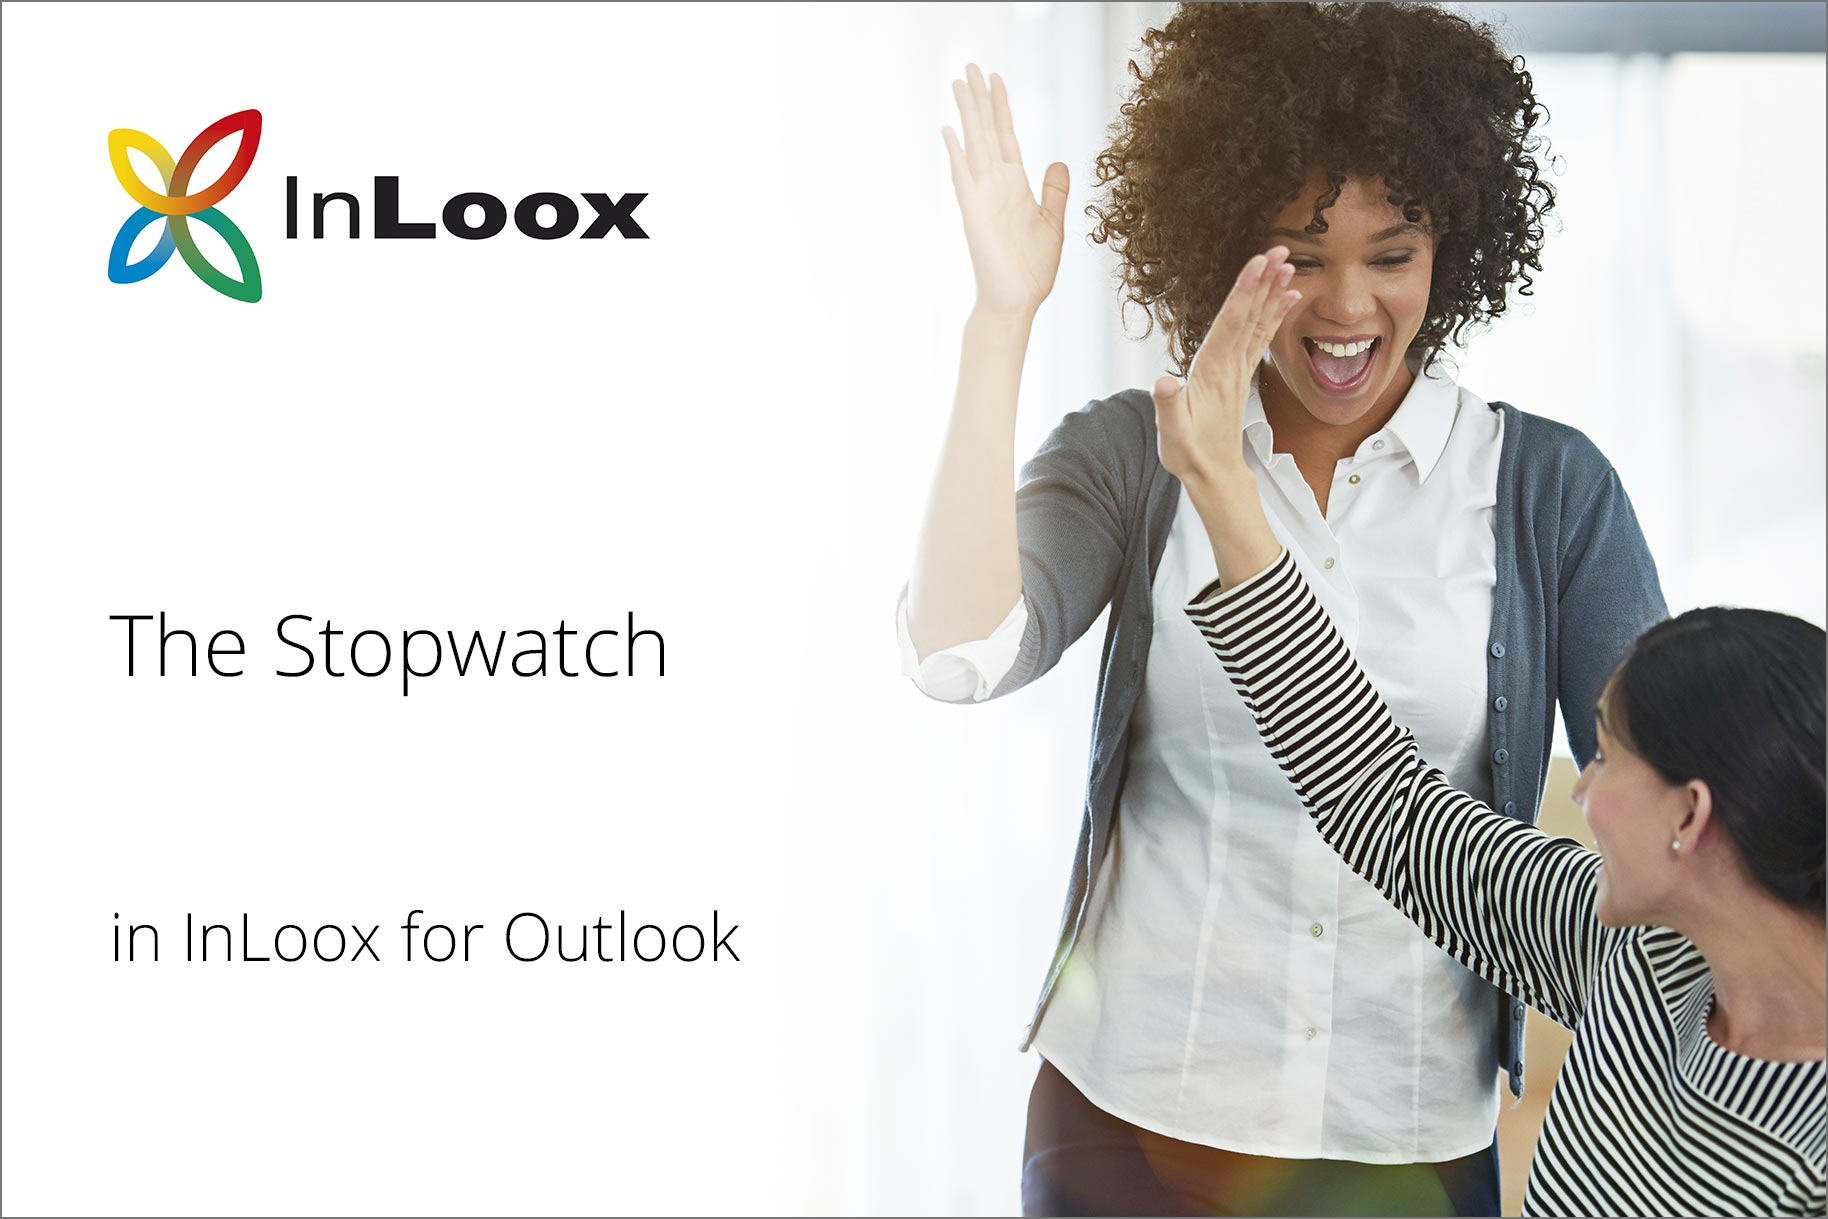 In the video tutorial you will learn how time management works with the InLoox stopwatch.